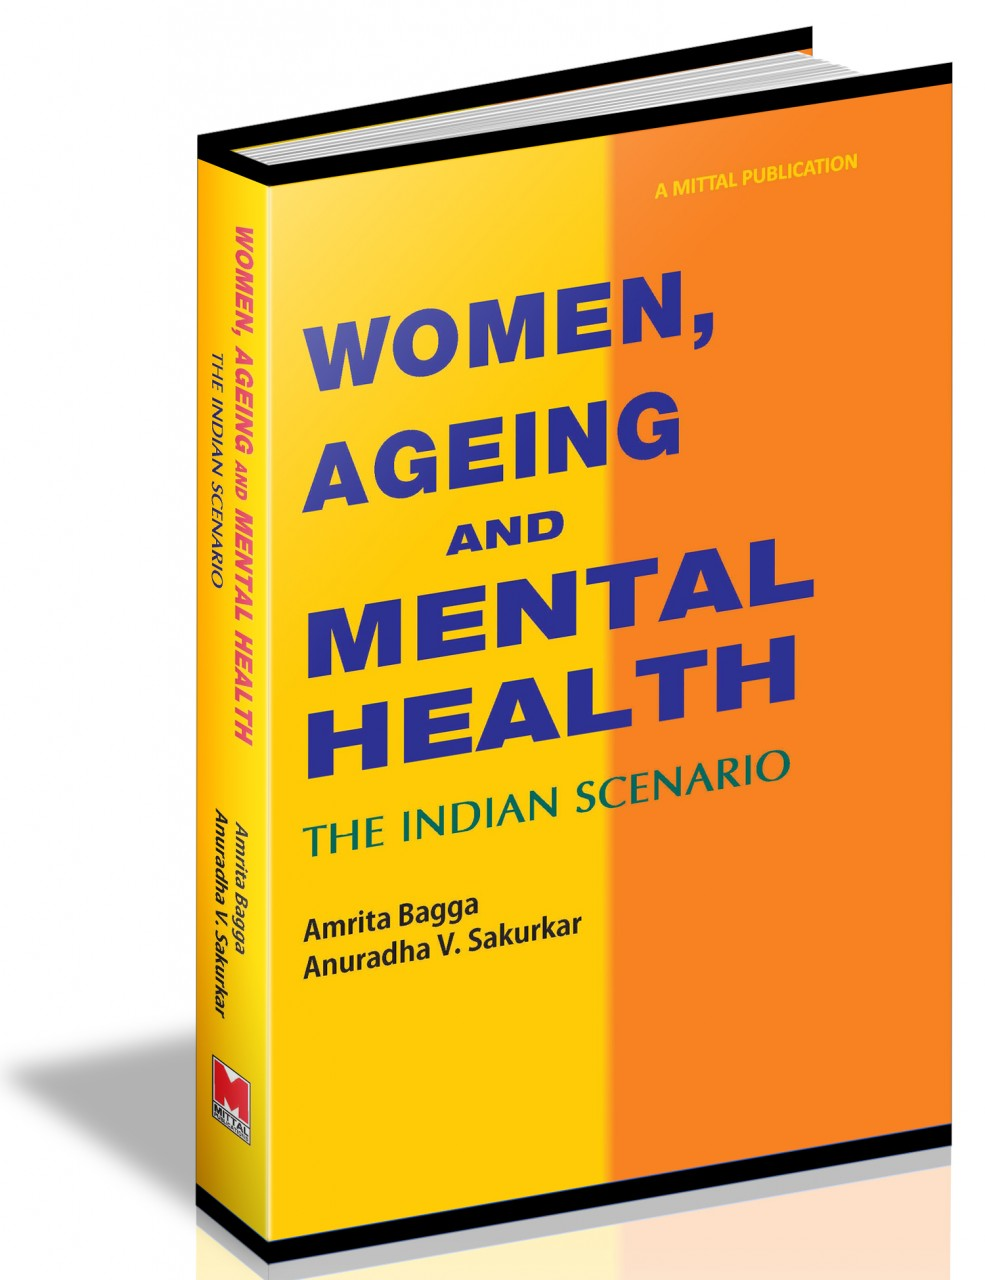 Women, Ageing and Mental Health